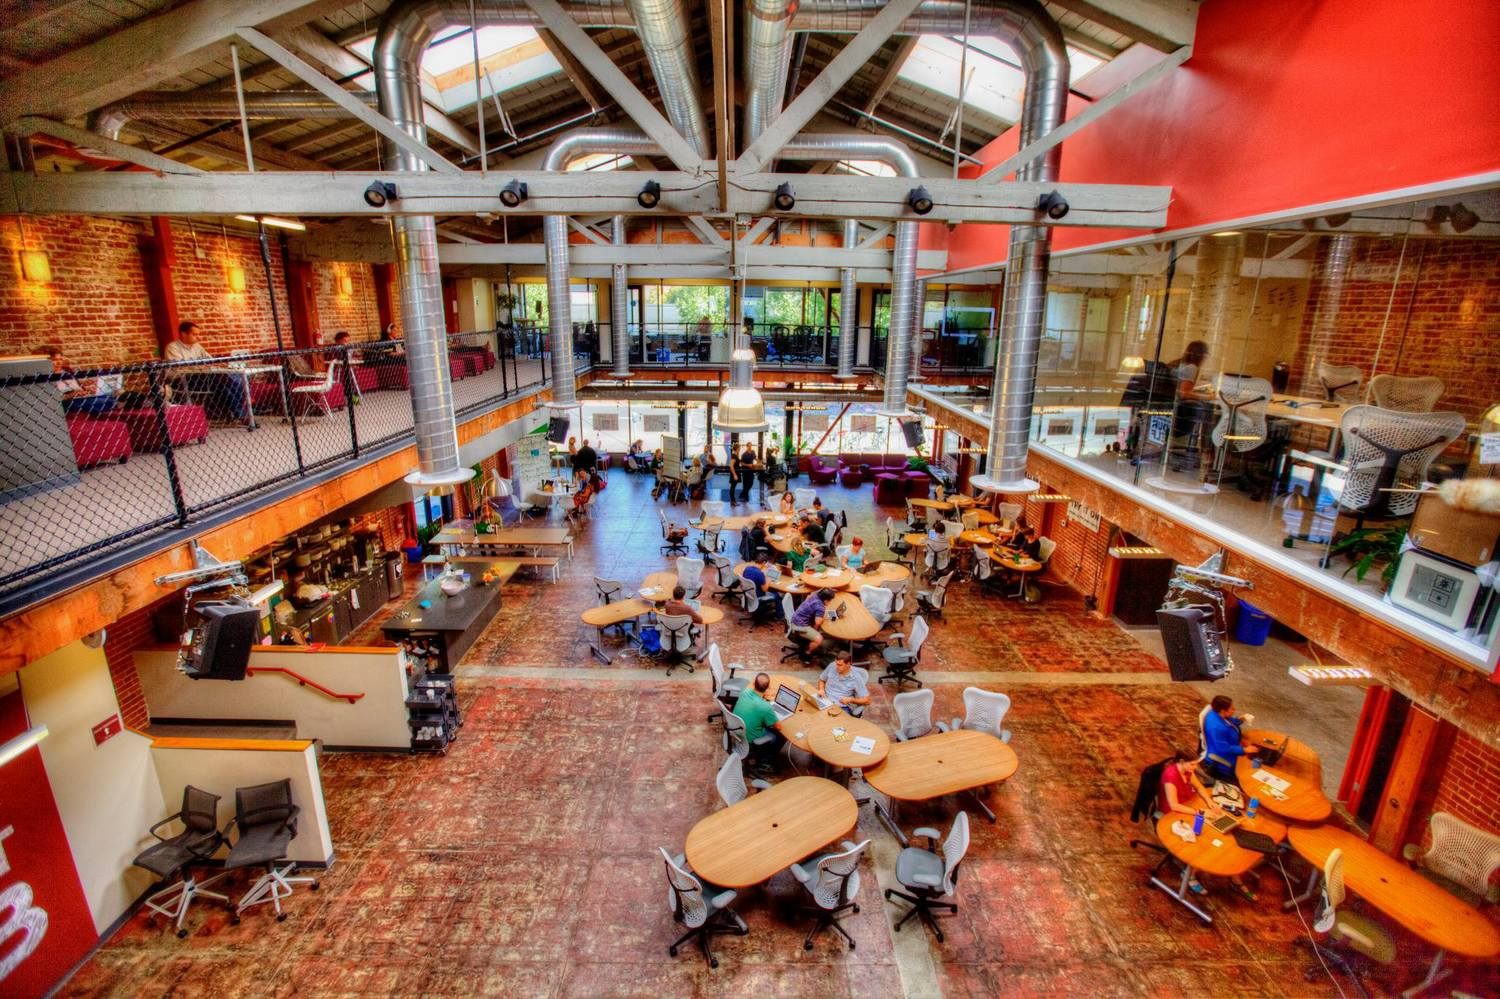 The Top 100 Coworking Spaces In US